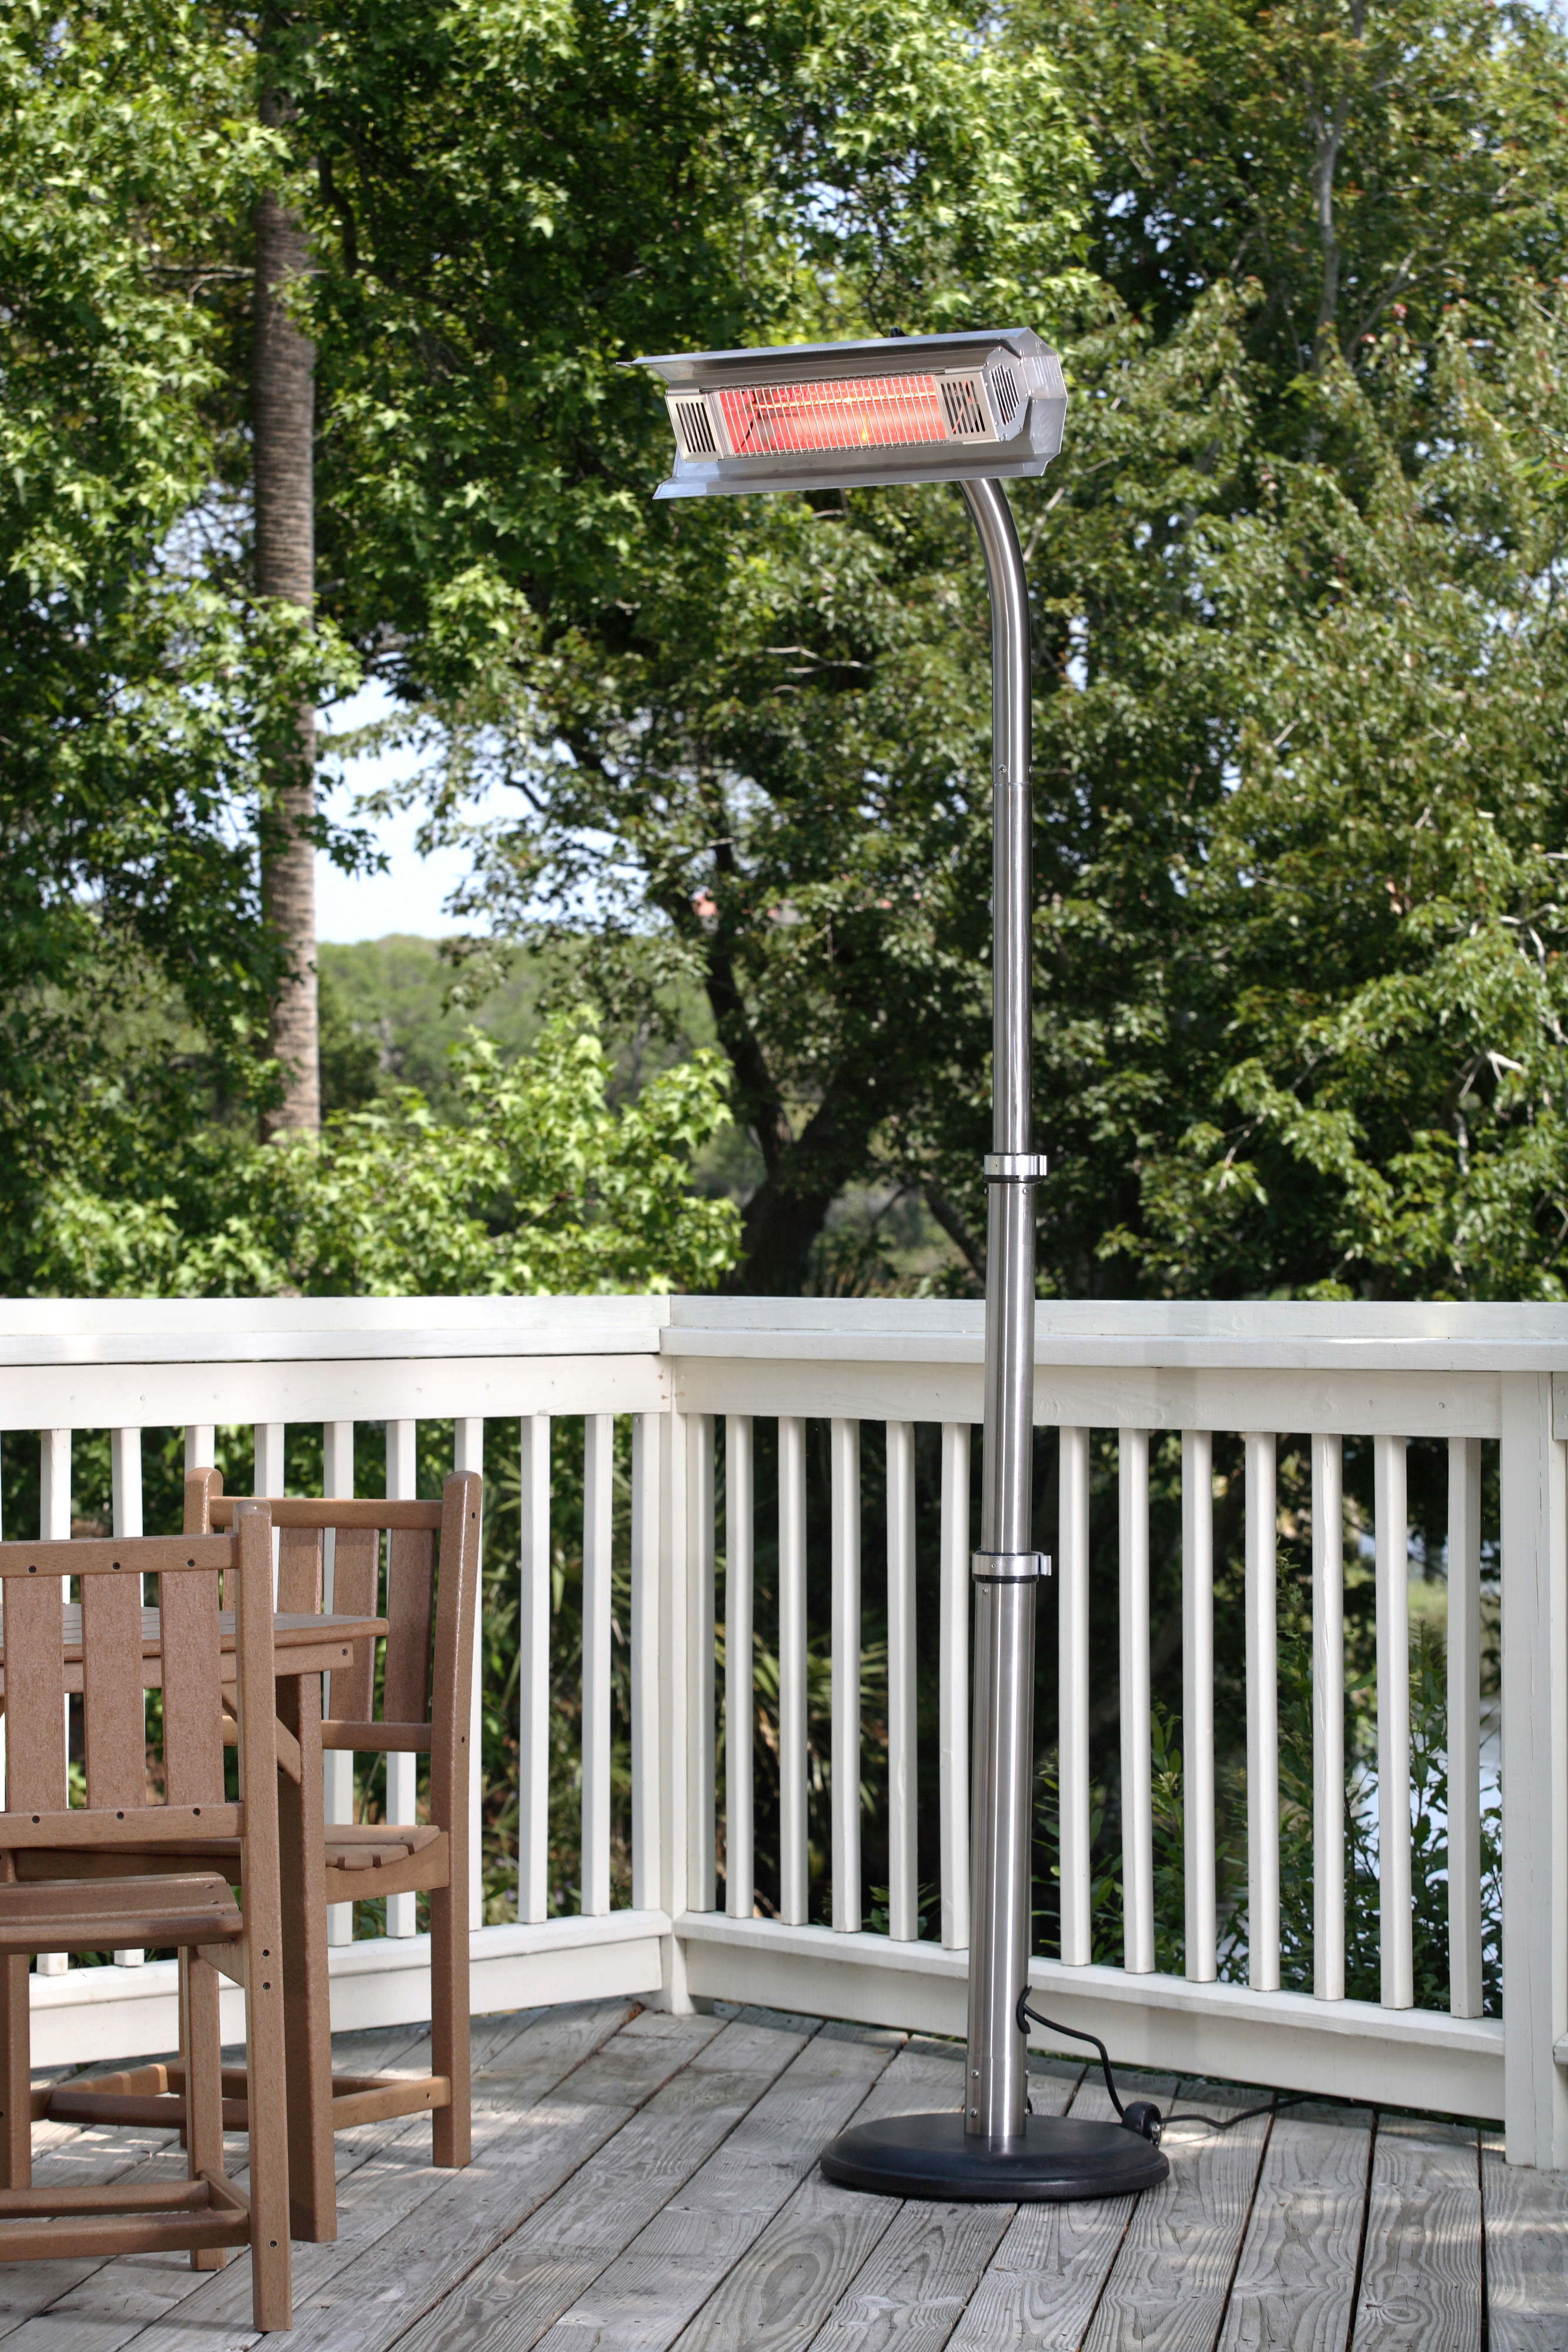 Stainless Steel Telescoping Offset Pole Mounted Infrared Patio